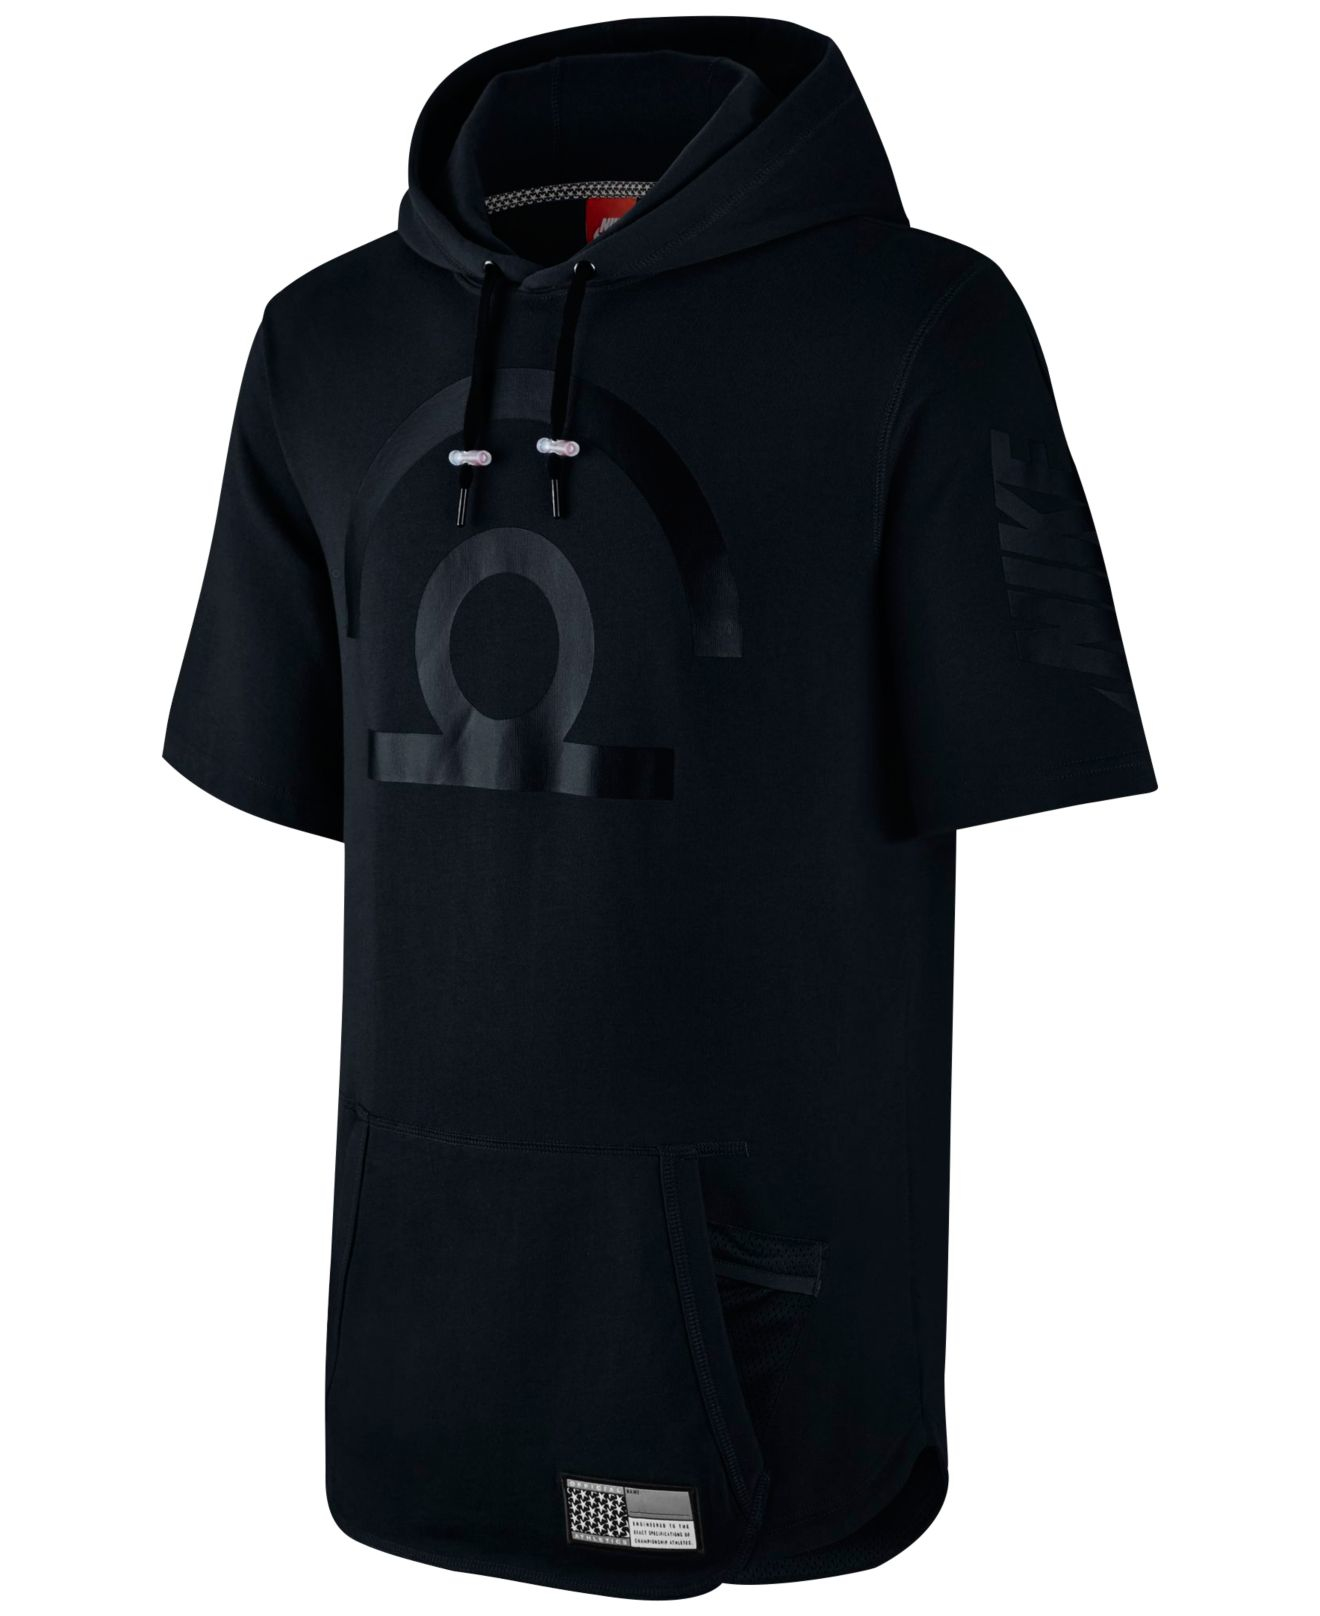 Nike Men's Air Pivot V3 Basketball Short-sleeve Hoodie in Black ...